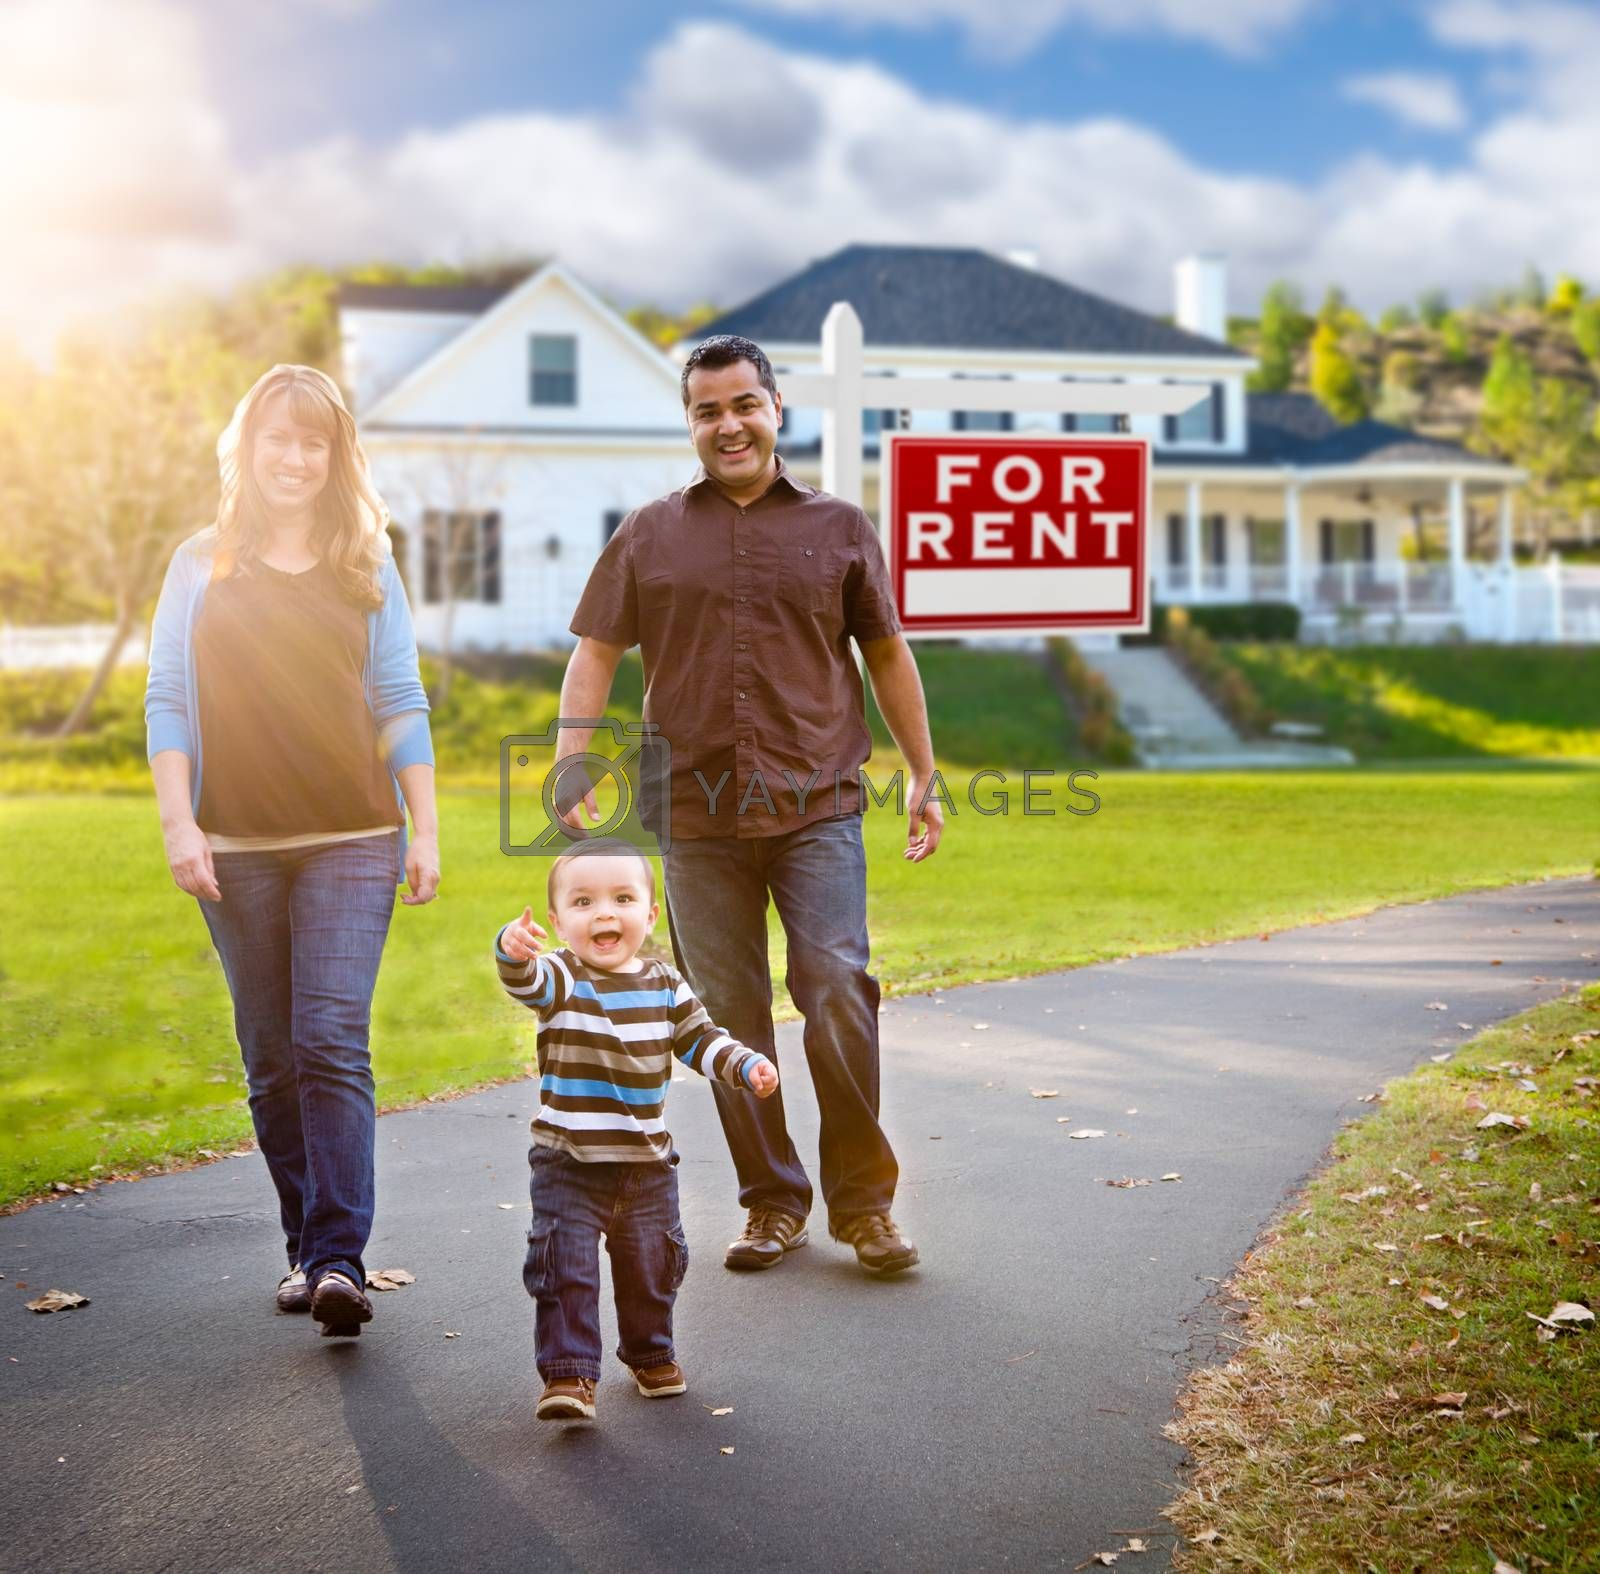 Happy Mixed Race Family Walking in Front of Home and For Rent Real Estate Sign.